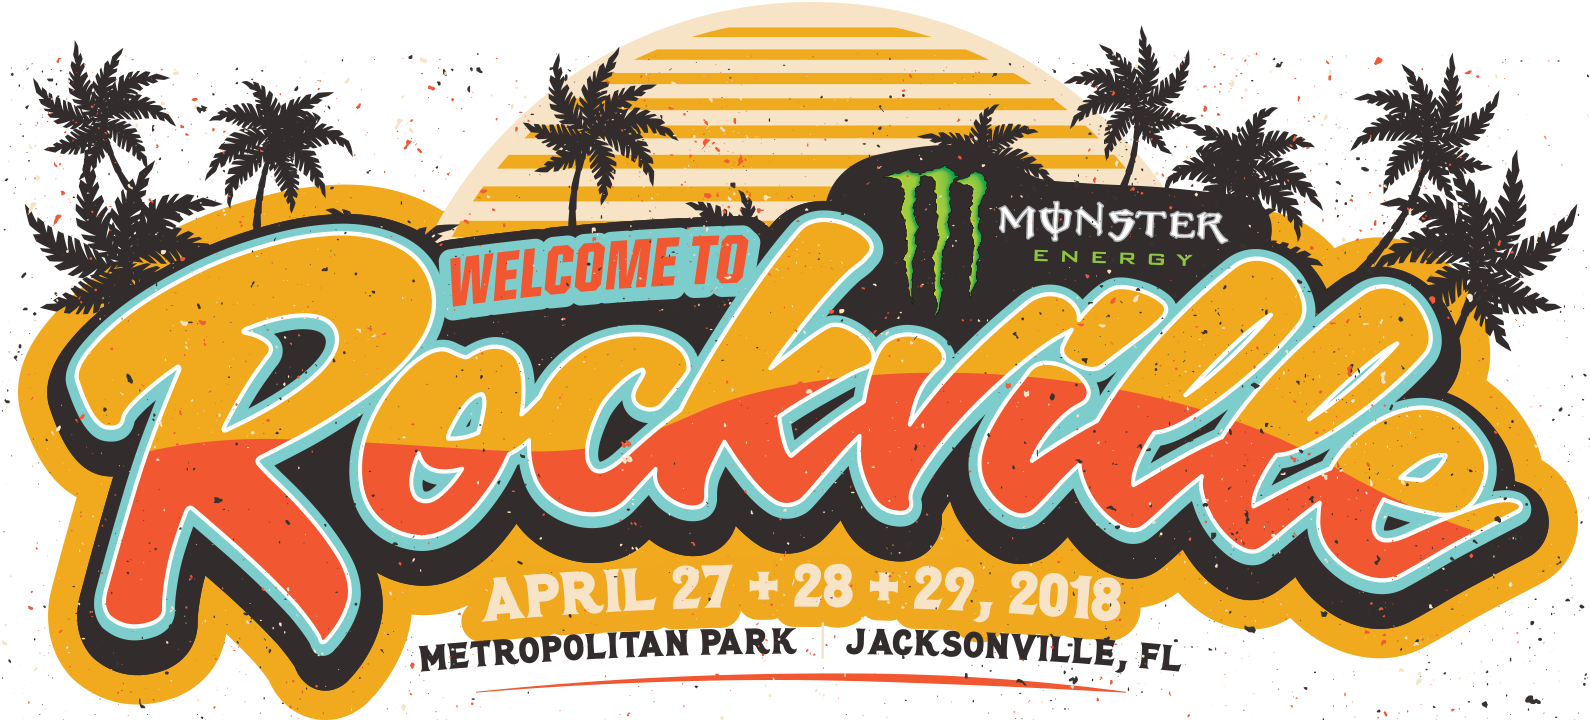 Welcome To Rockville Lineup Announced Ozzy Osbourne Foo Fighters Avenged Sevenfold And Many More April 27 29 In Jacksonville Fl Scenezine